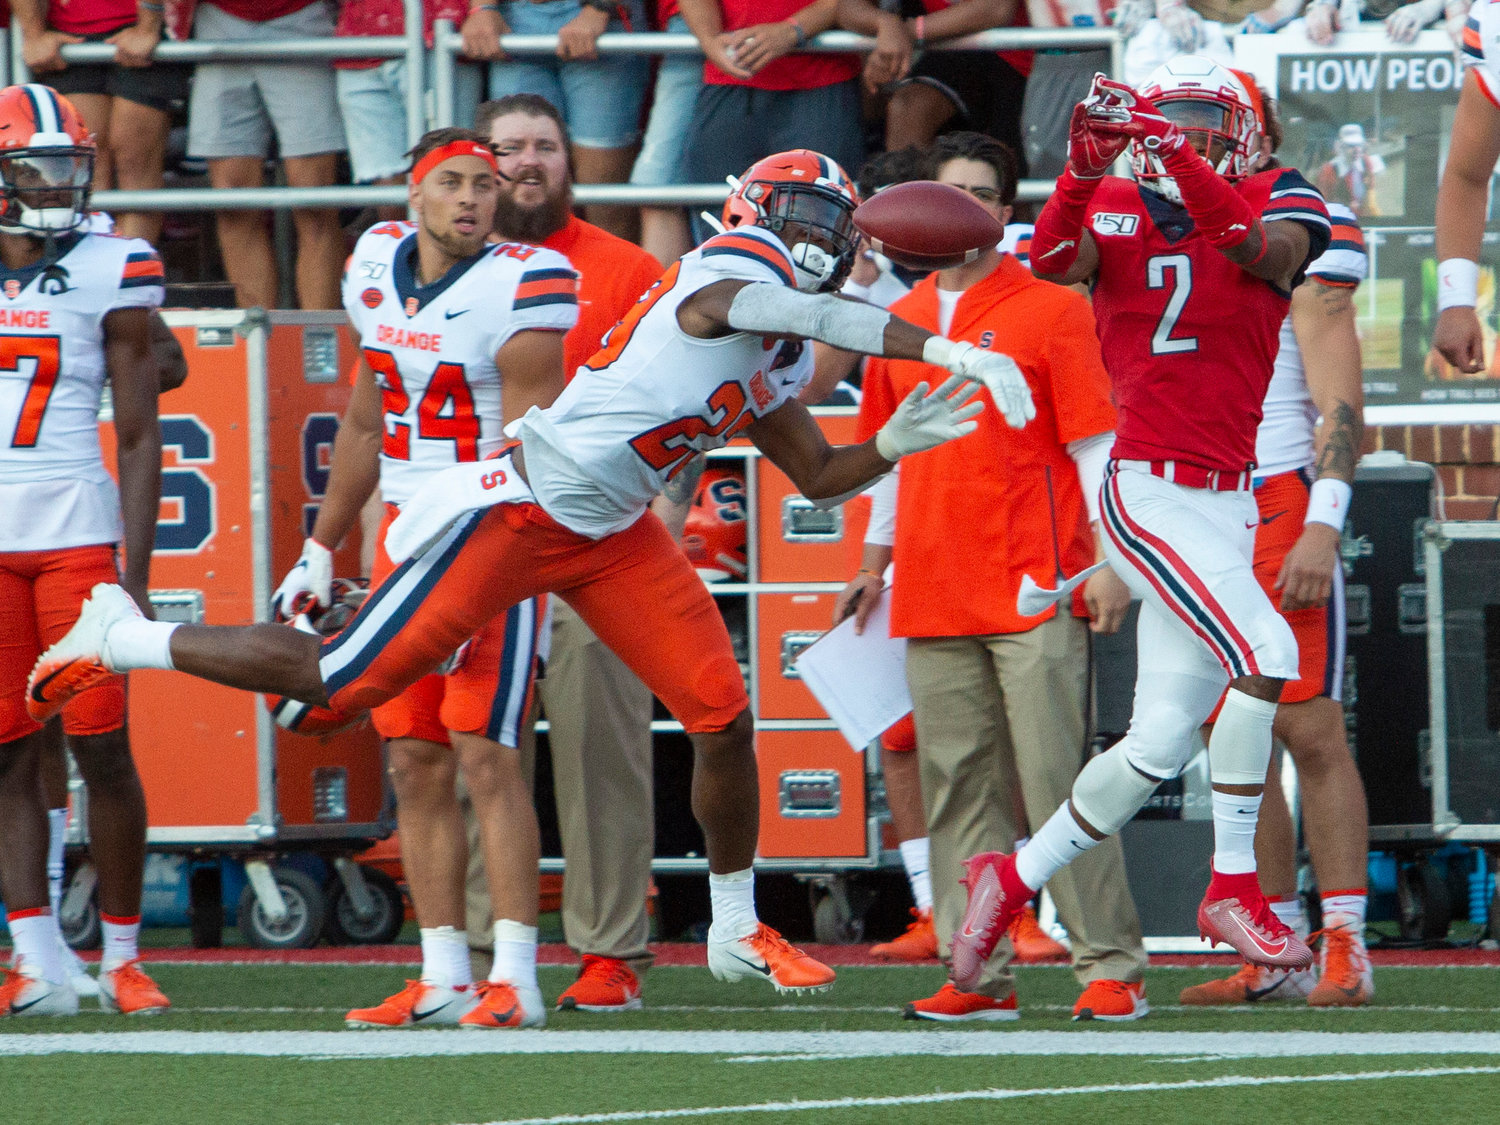 Syracuse's Adrian Cole bats away a pass intended for Liberty wide receiver Kevin Shaa during an NCAA game in Lynchburg, Va. Saturday.